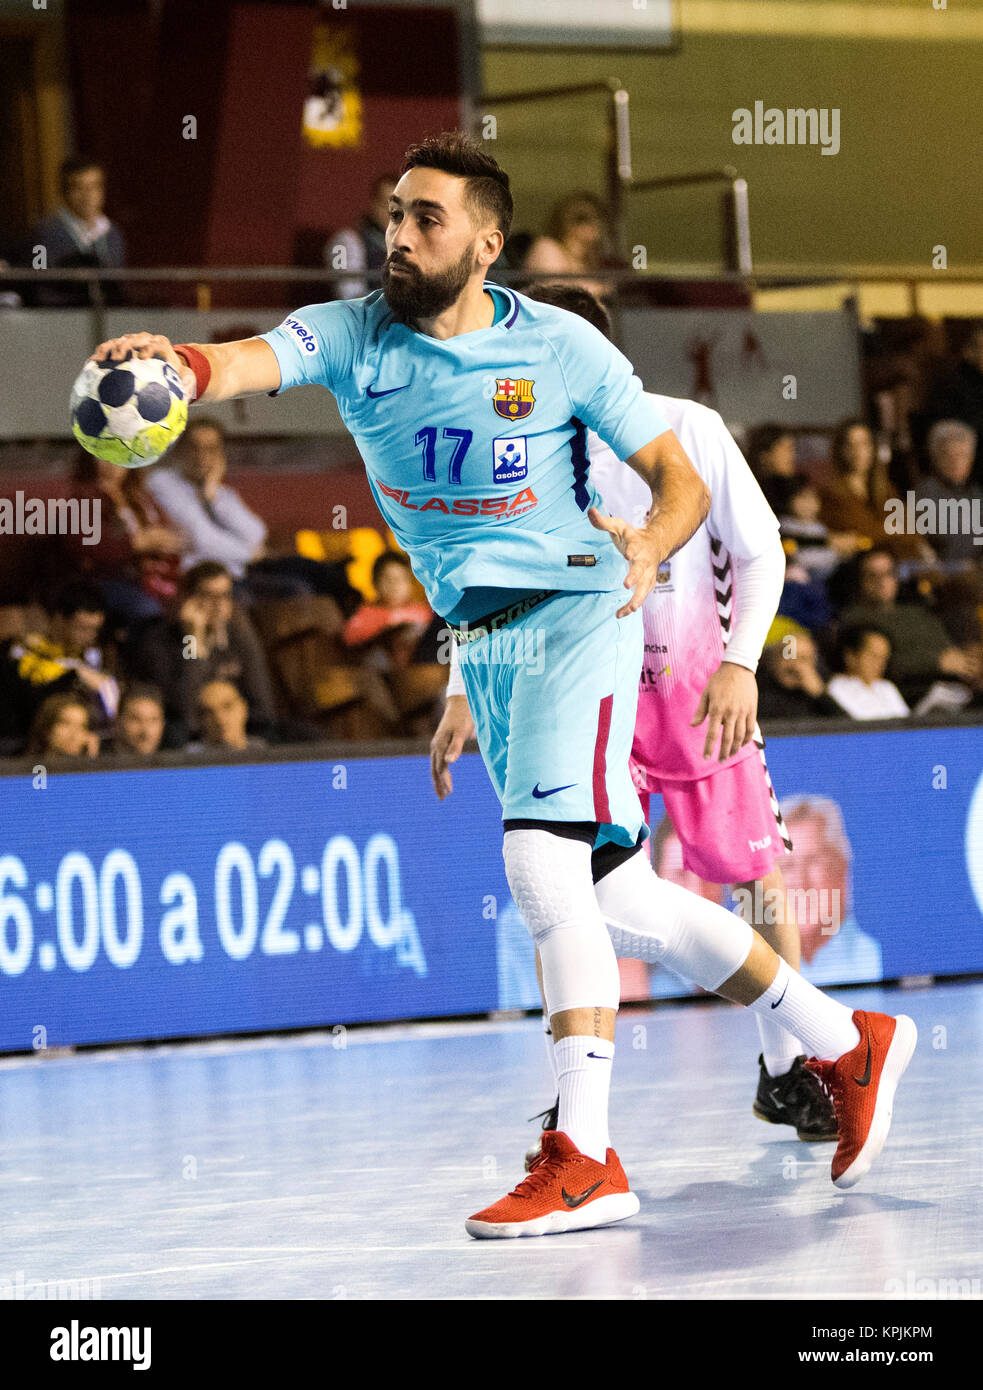 Leon, Spain. 16th December, 2017. Valero Rivera (FC Barcelona) in action during the handball match of 2017/2018 - Stock Image